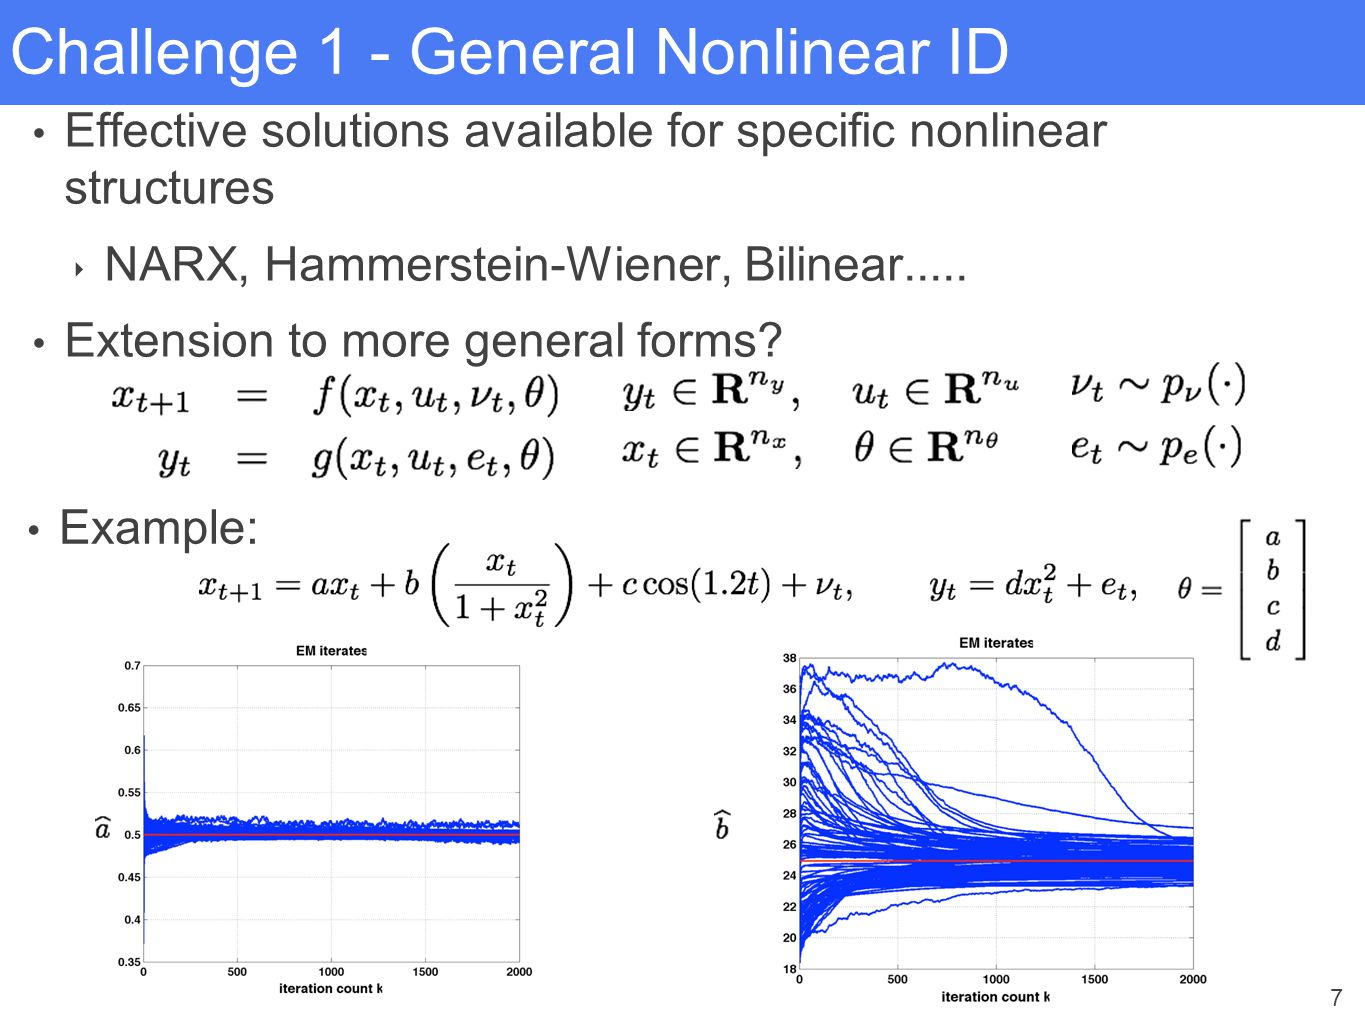 7 Challenge 1 - General Nonlinear ID Effective solutions available for specific nonlinear structures ‣ NARX, Hammerstein-Wiener, Bilinear..... Extensi